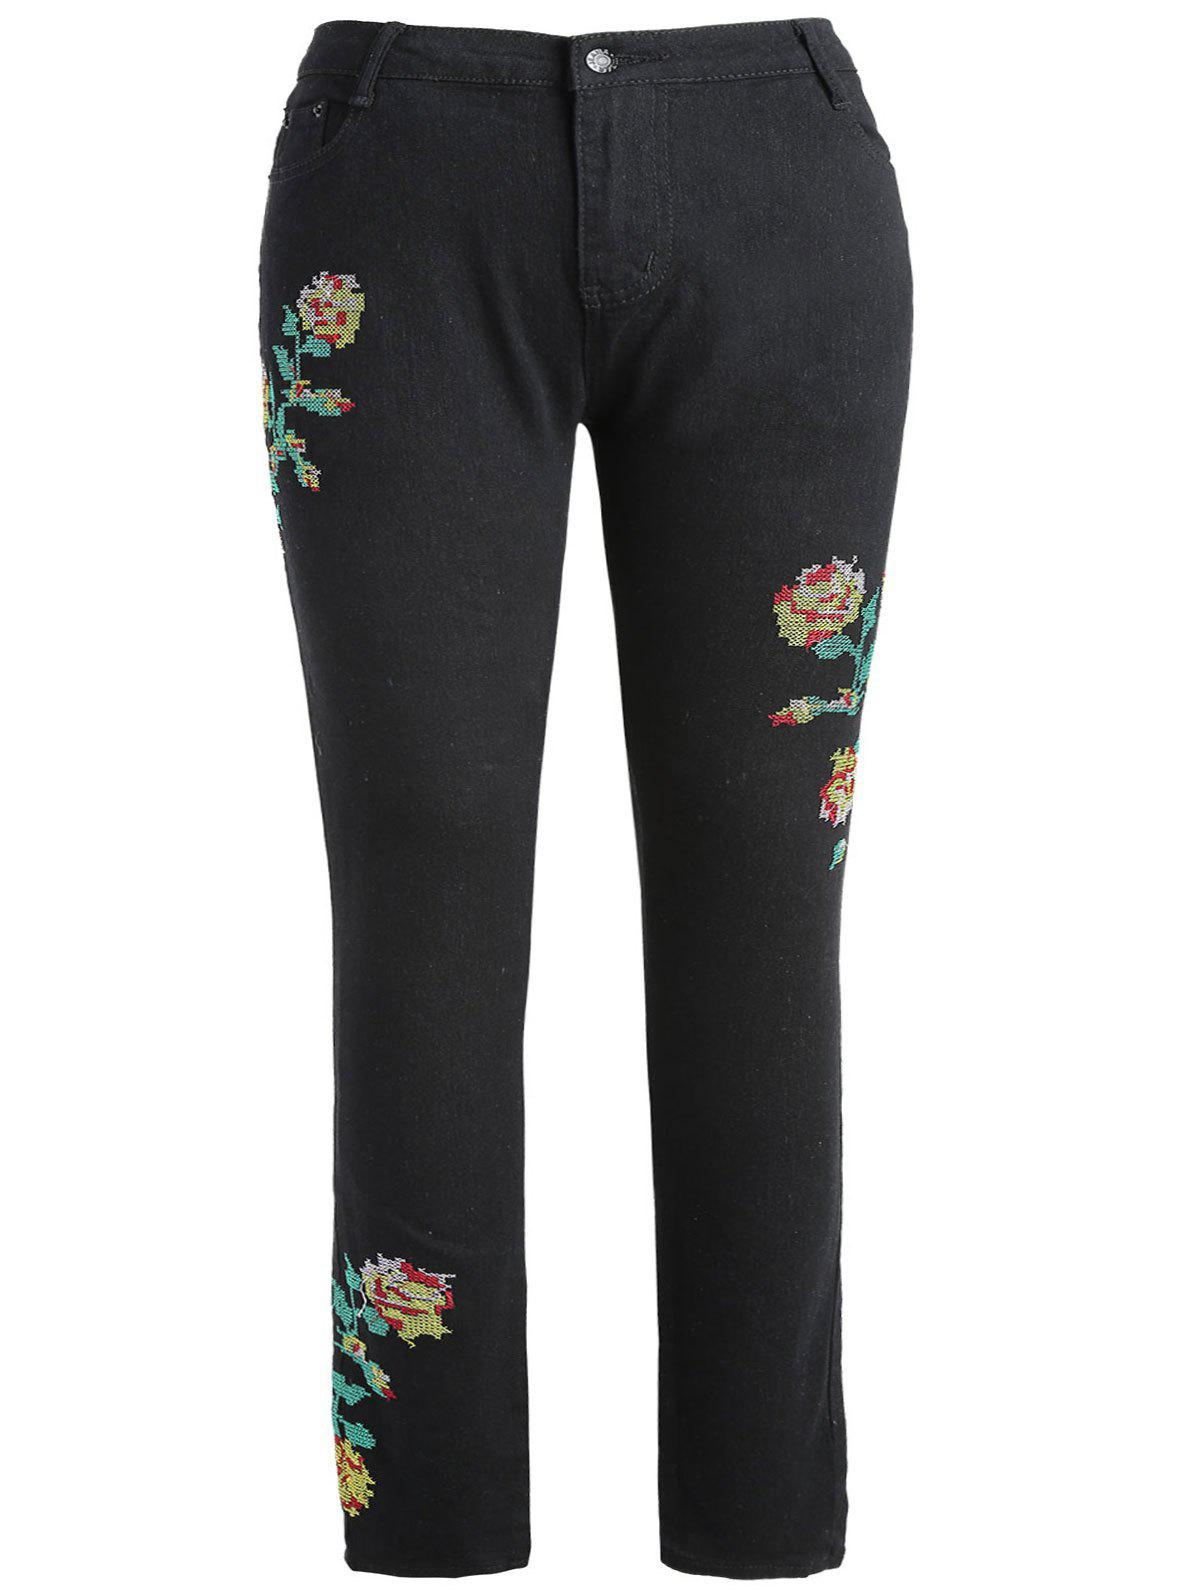 Plus Size Slim Fit Floral Embroidered Jeans - BLACK 2X